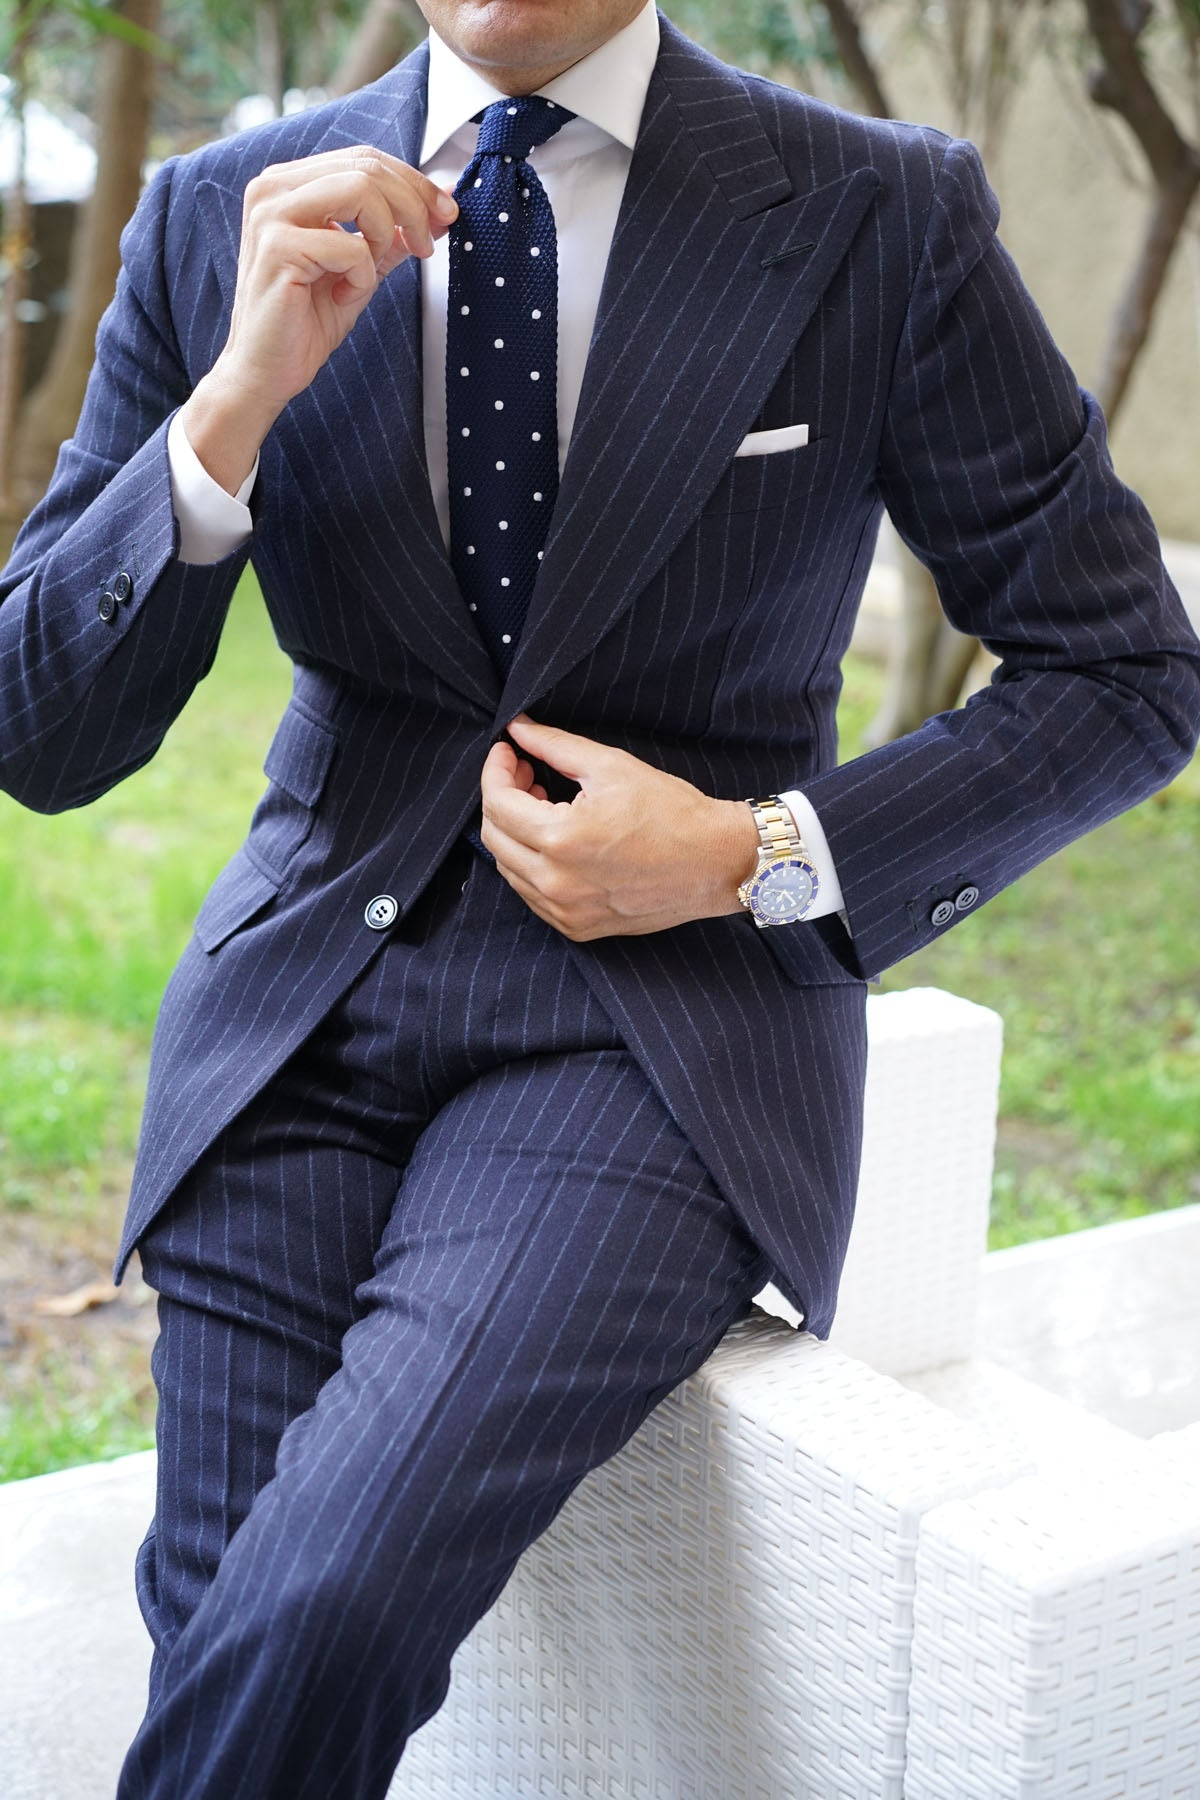 Tao Navy Polka Dot Knitted Tie